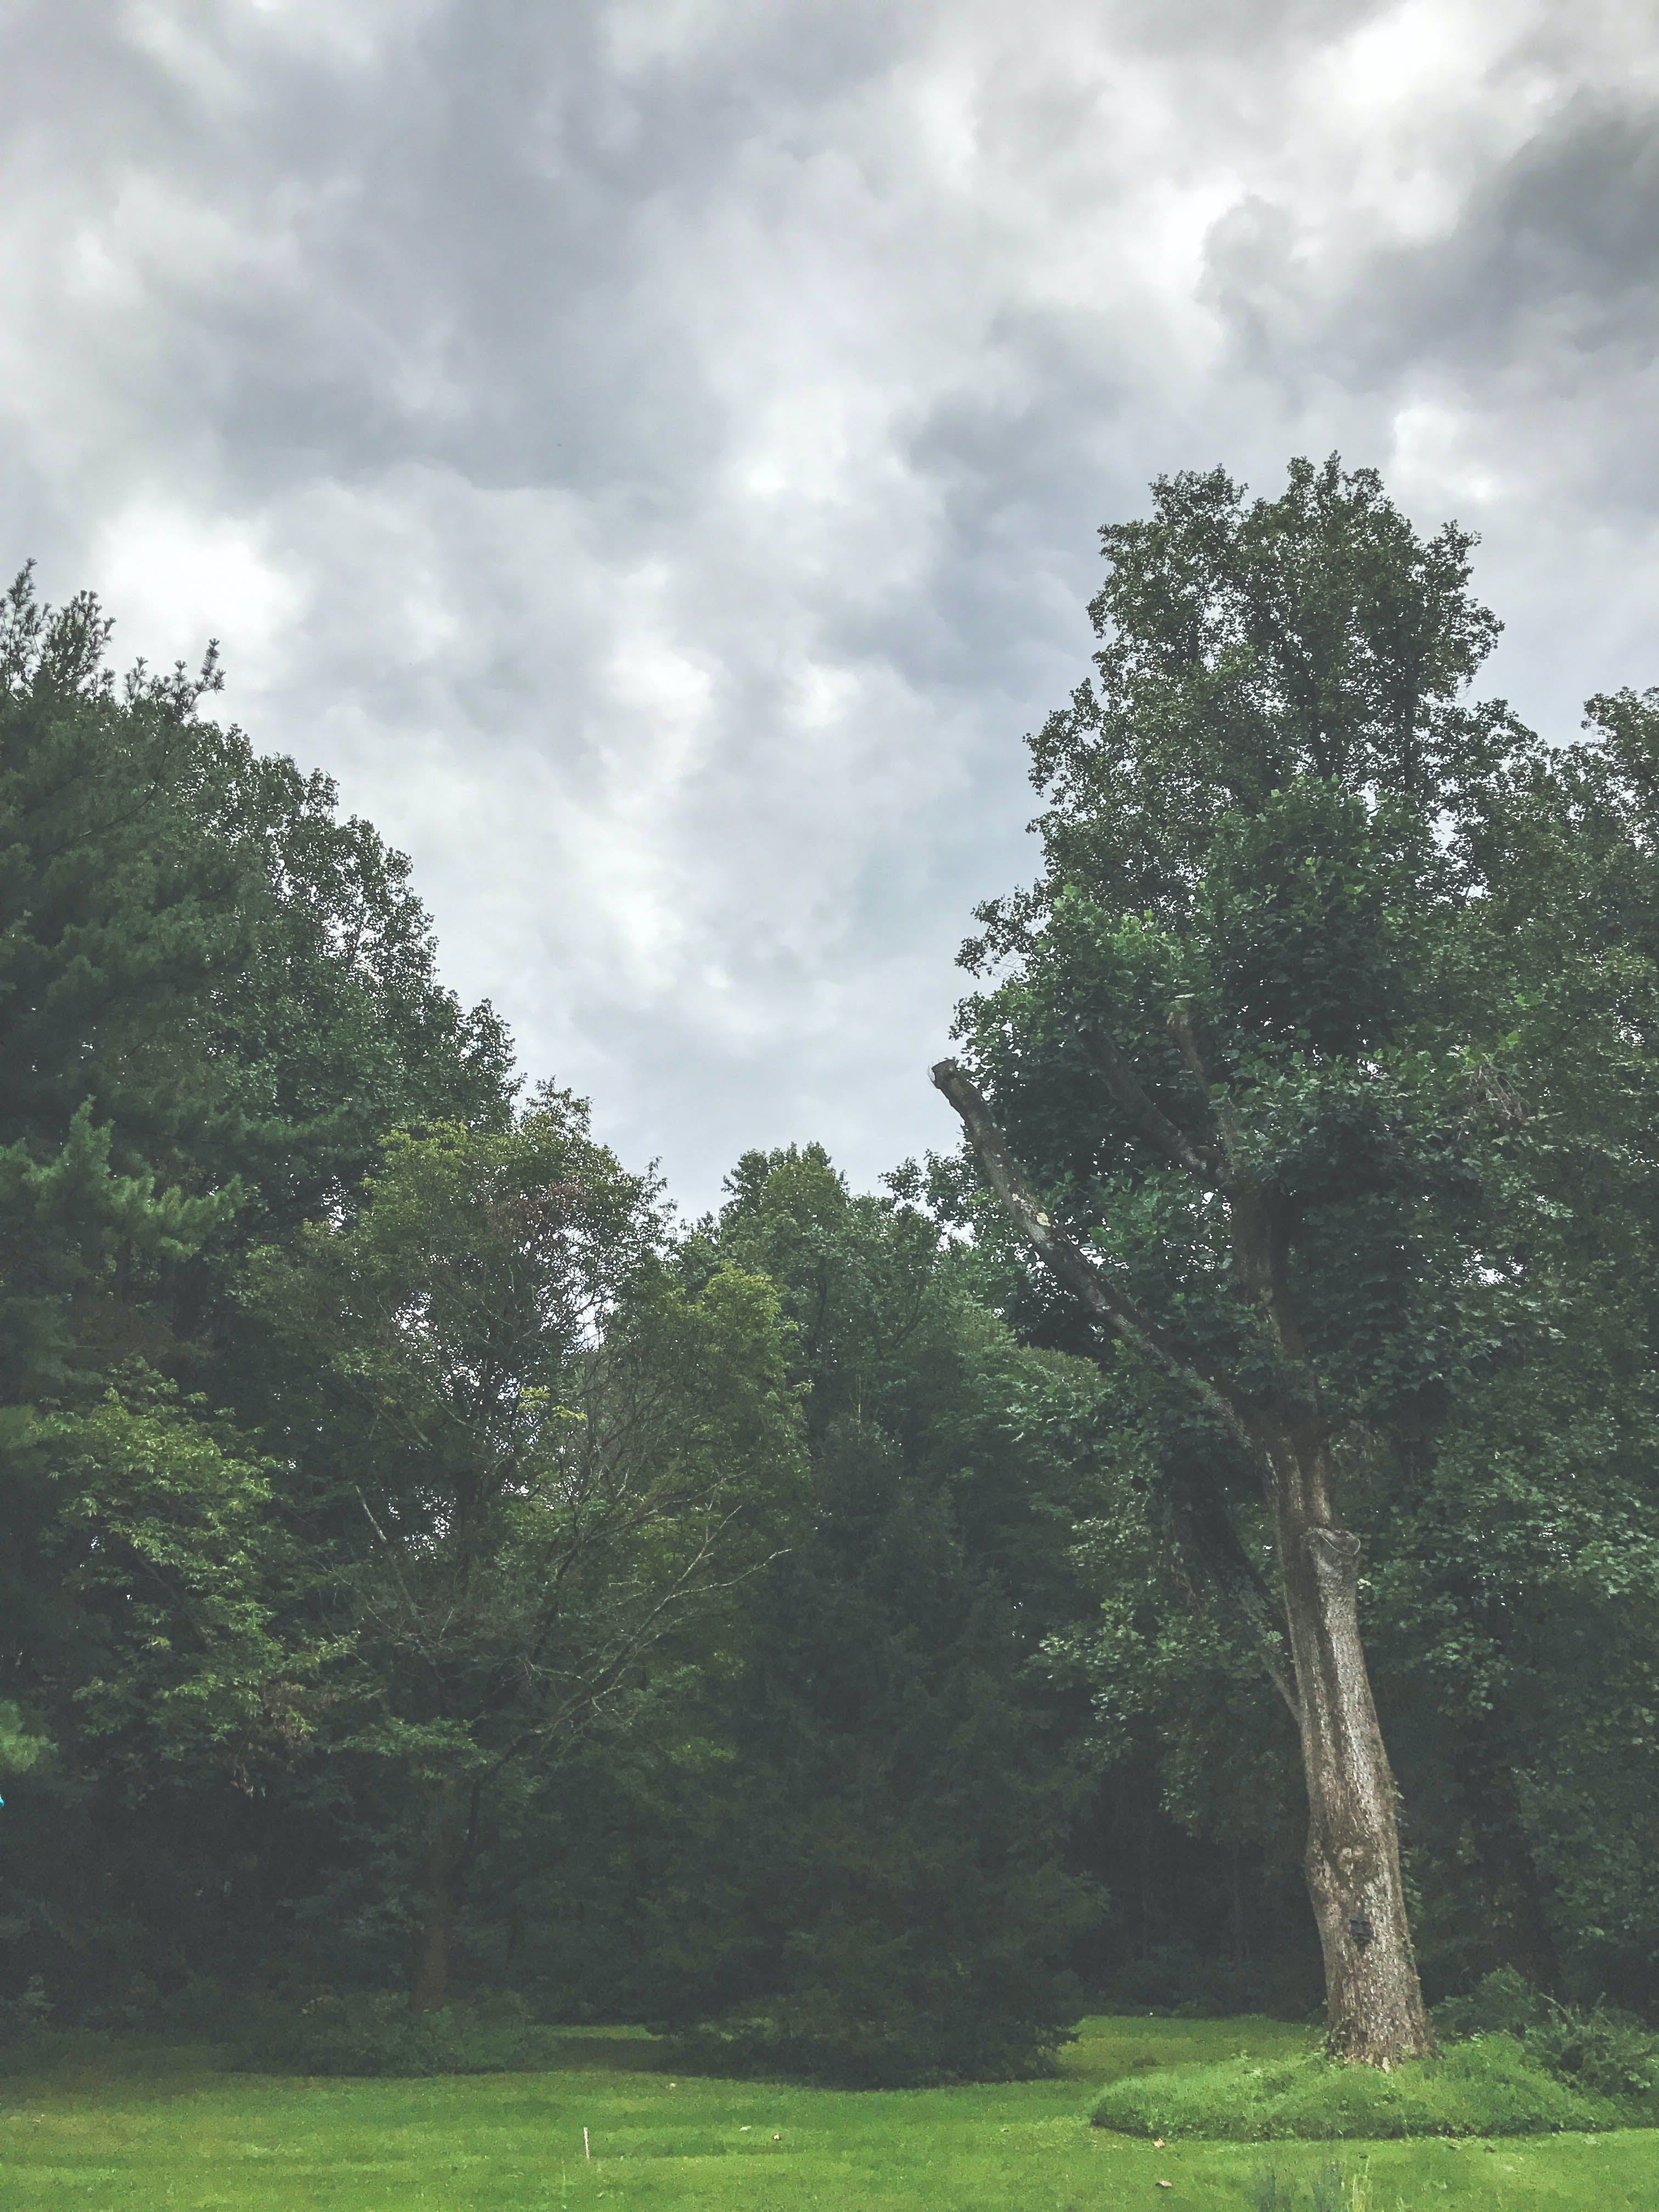 Green Trees Under the Cloudy Sky